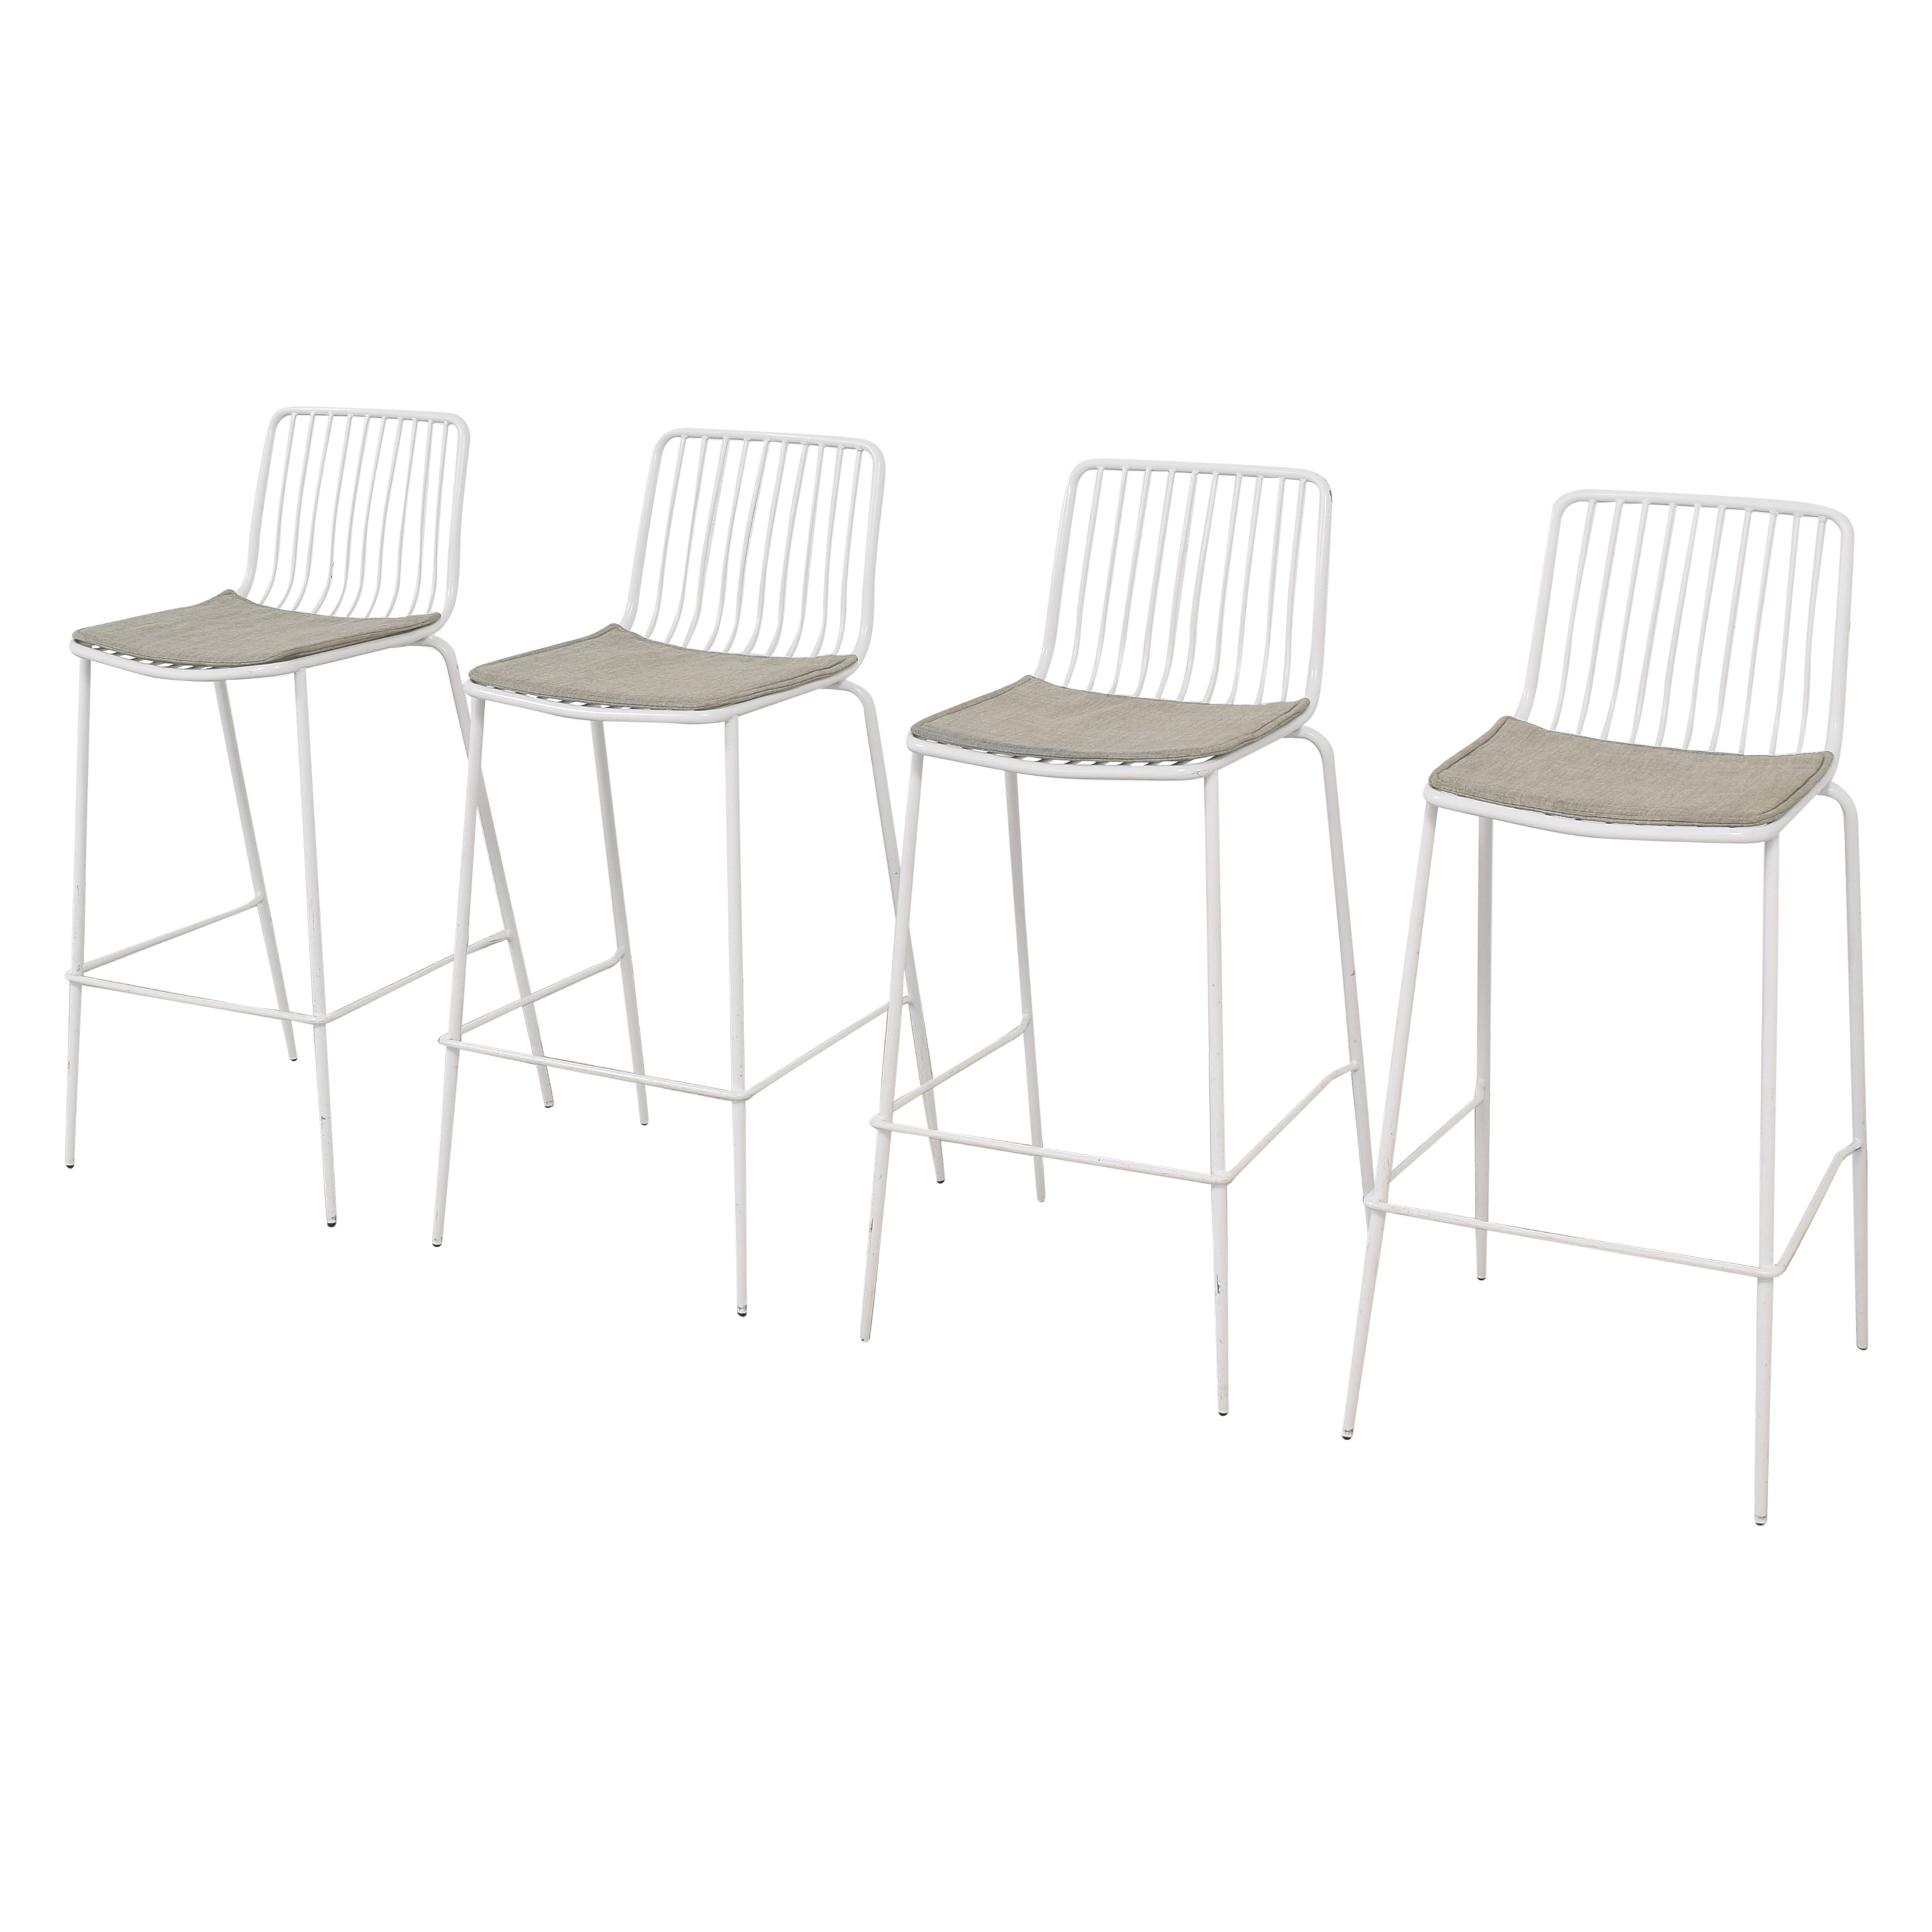 Ace Bayou White Metal Bar Stools / Chairs